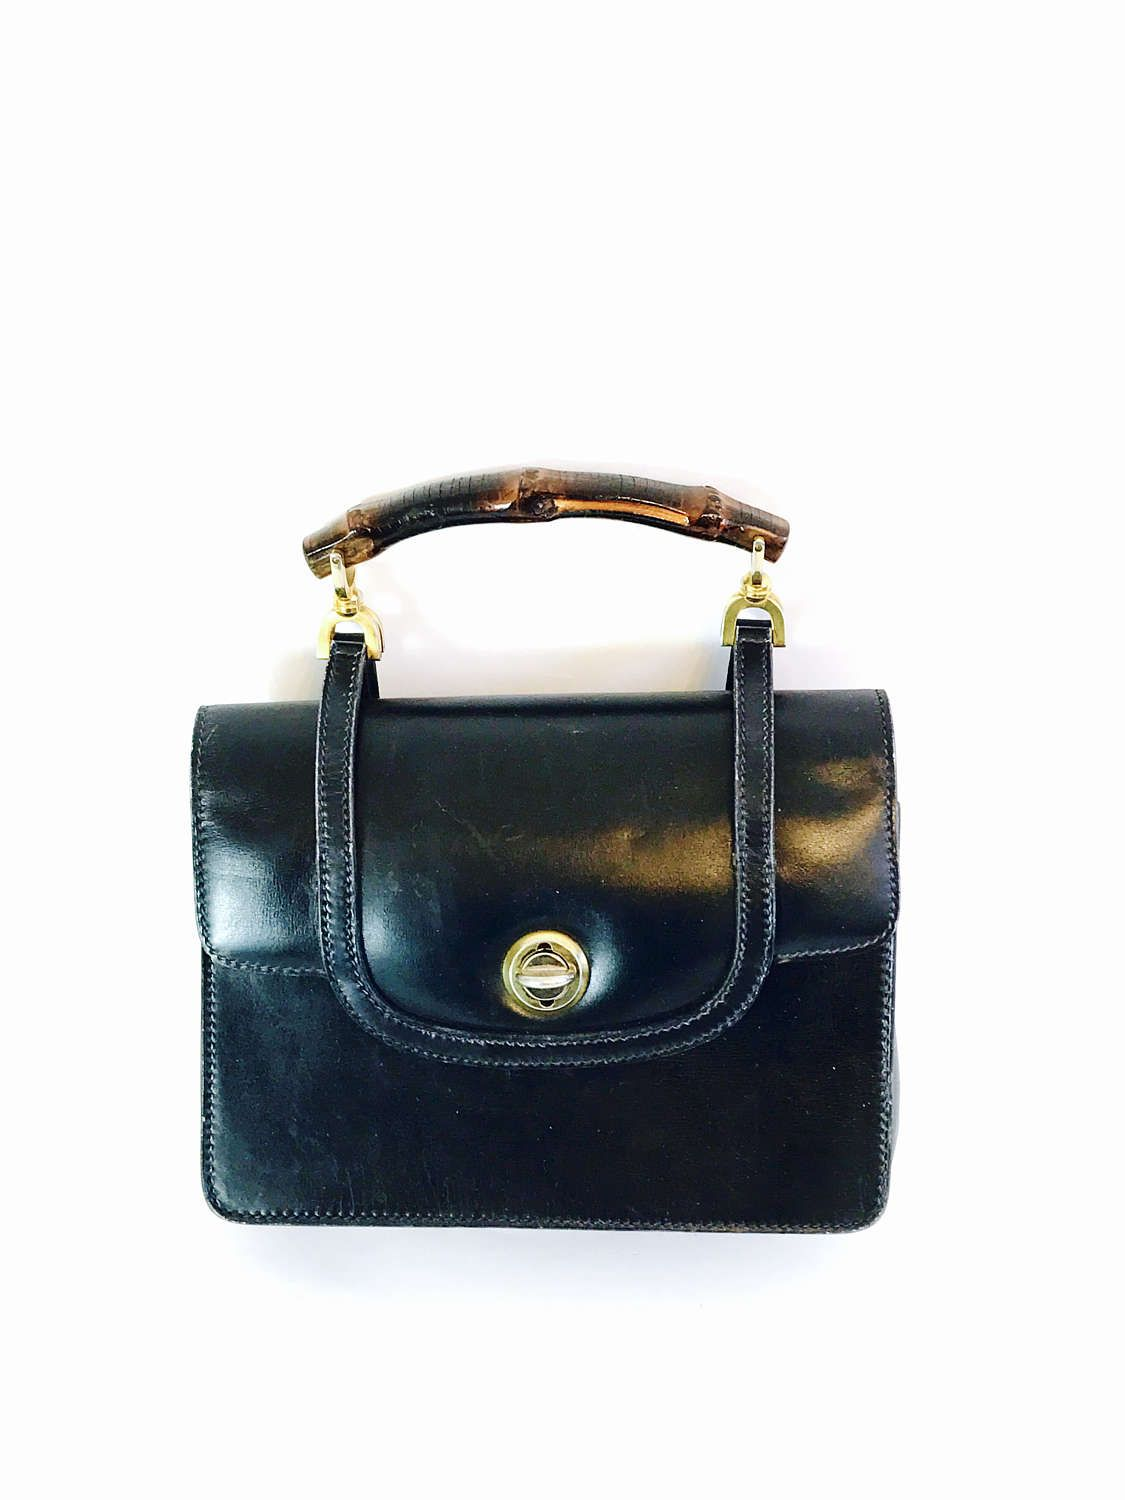 acb56645df65 Authentic GUCCI 1950s Handbag Navy Blue Leather Bag Wood Bamboo Top Handle  Pocketbook Stamped 50s True Vintage Designer Purse Made in Italy by ...